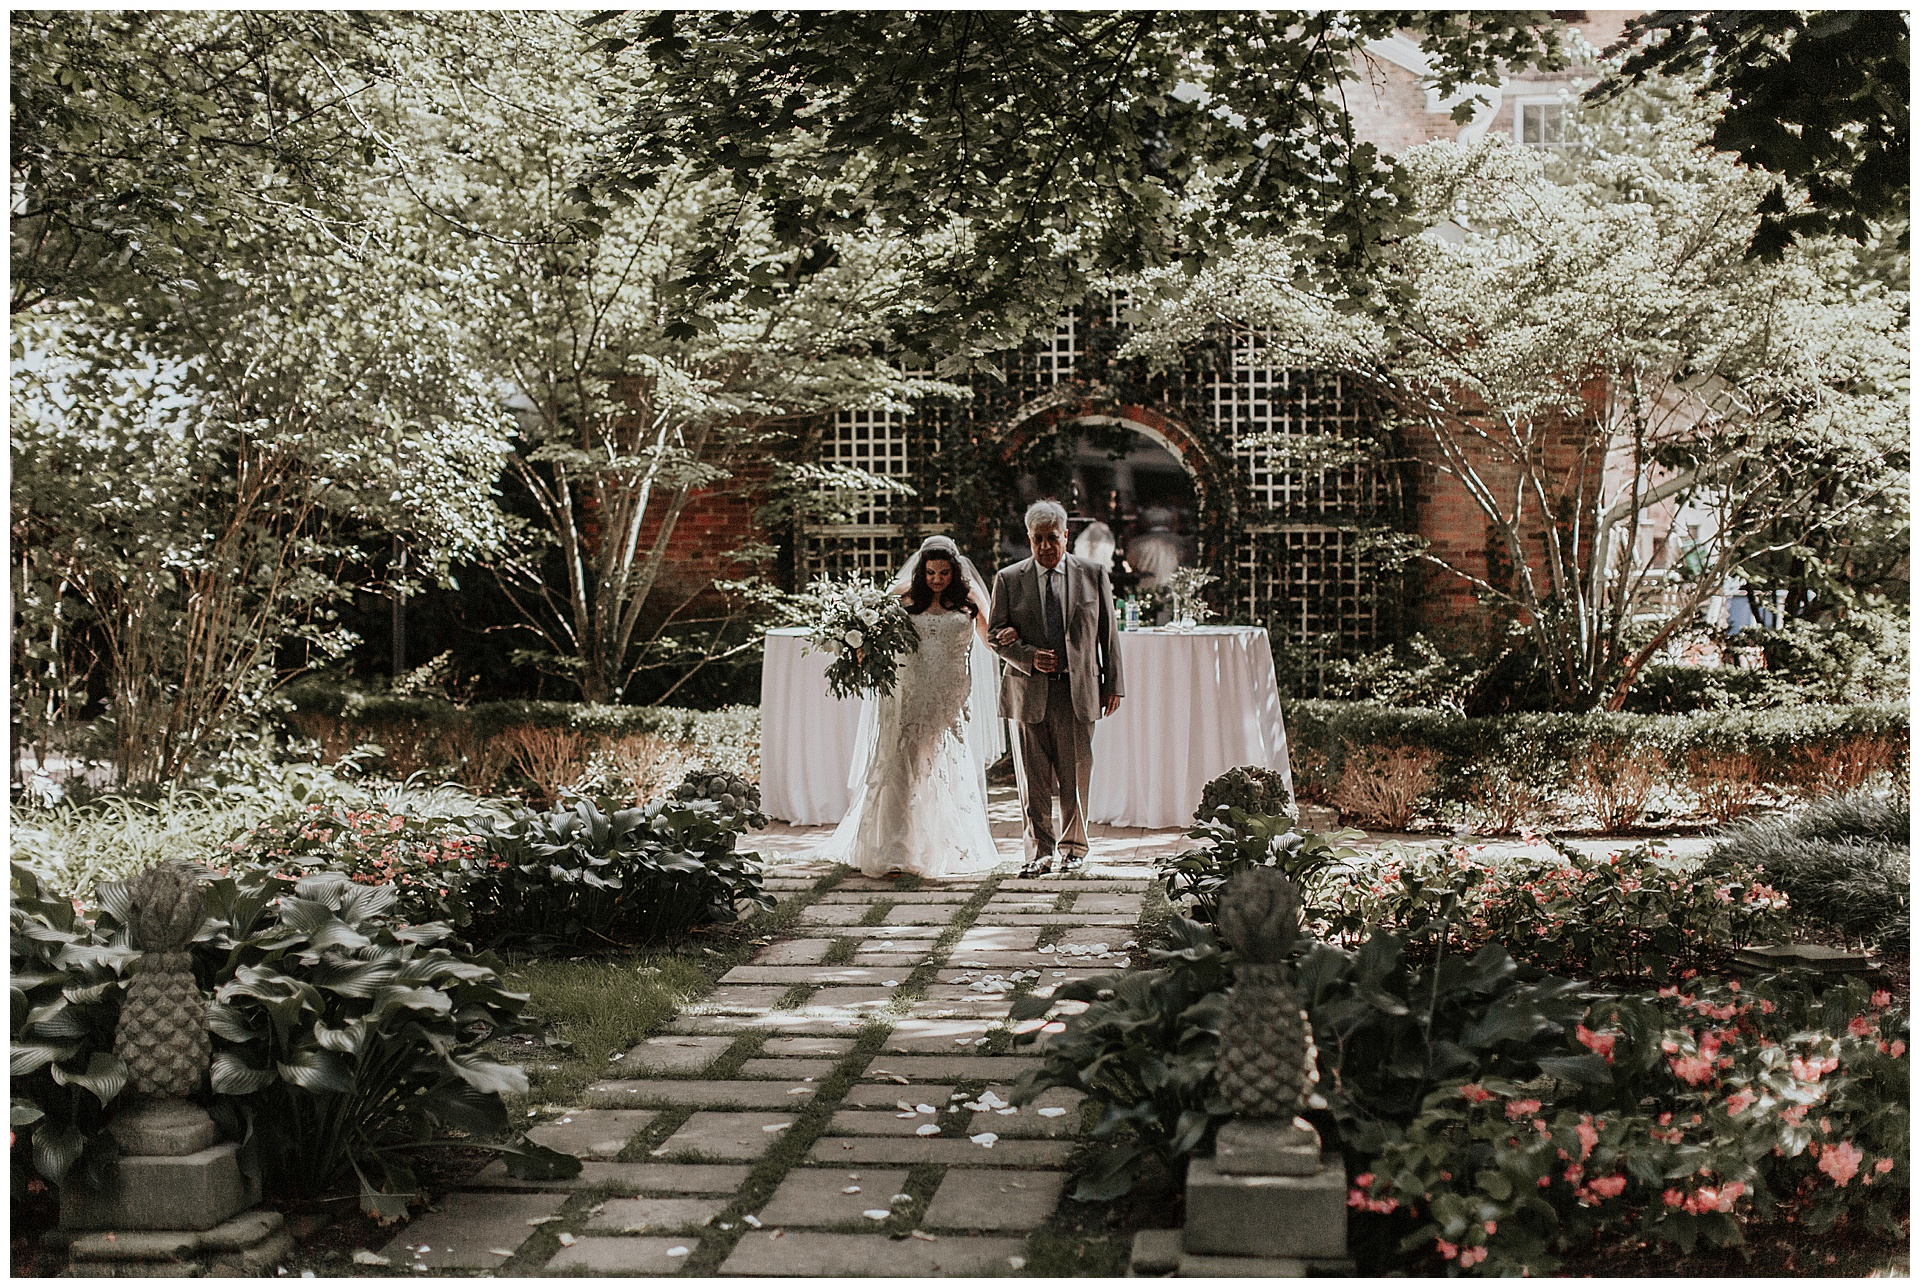 kelton house wedding columbus ohio_mia dimare photo22.jpg